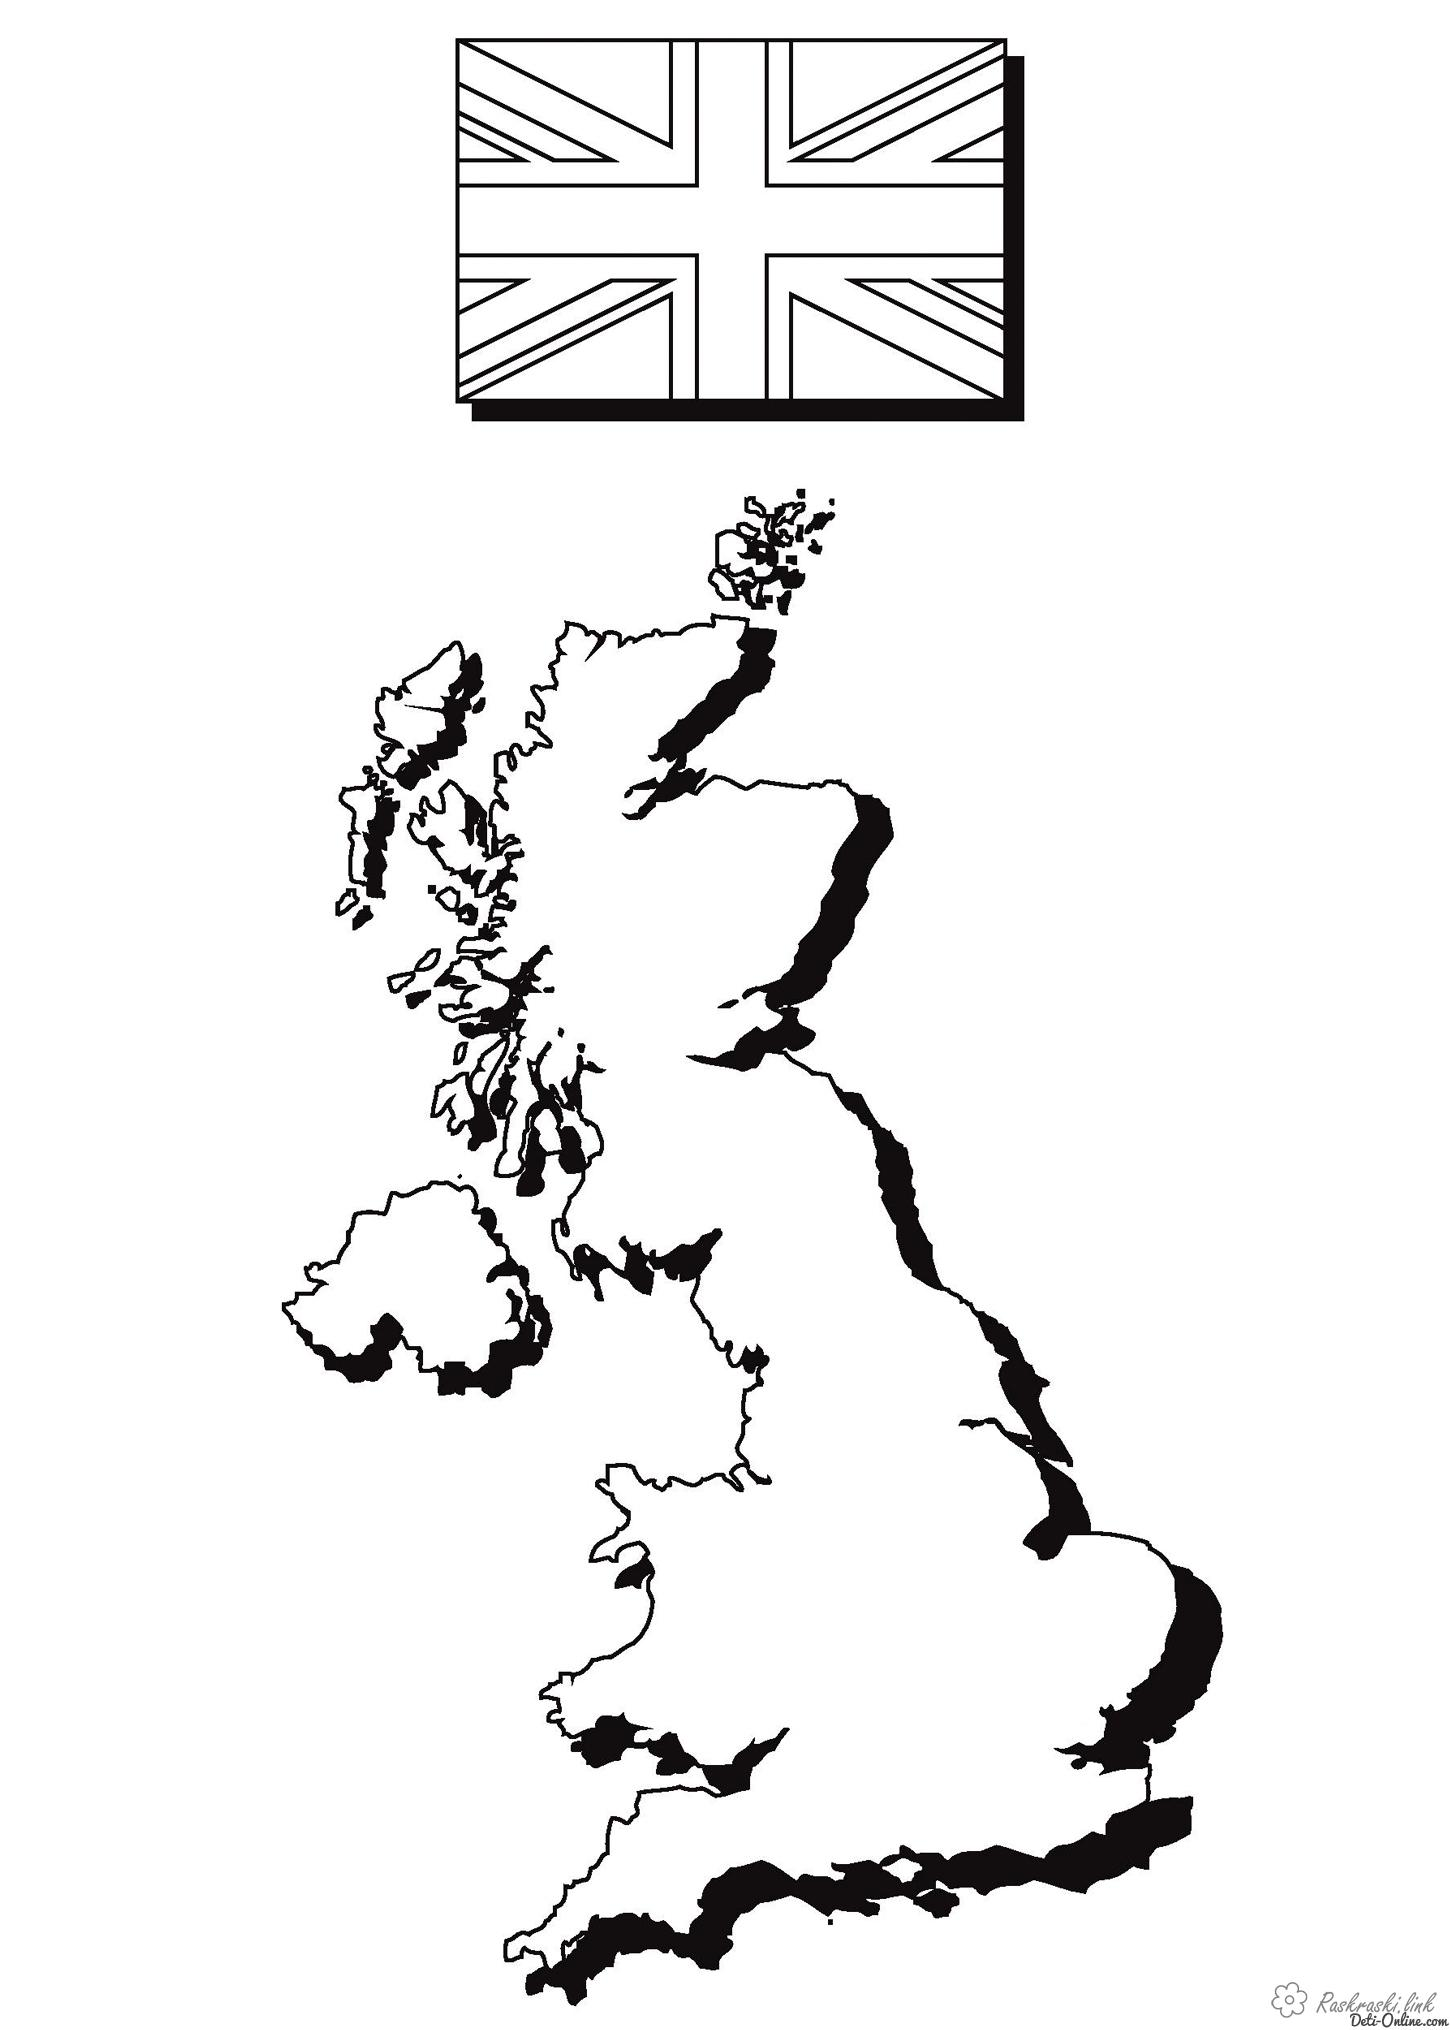 Coloring London coloring pages map and the flag of England